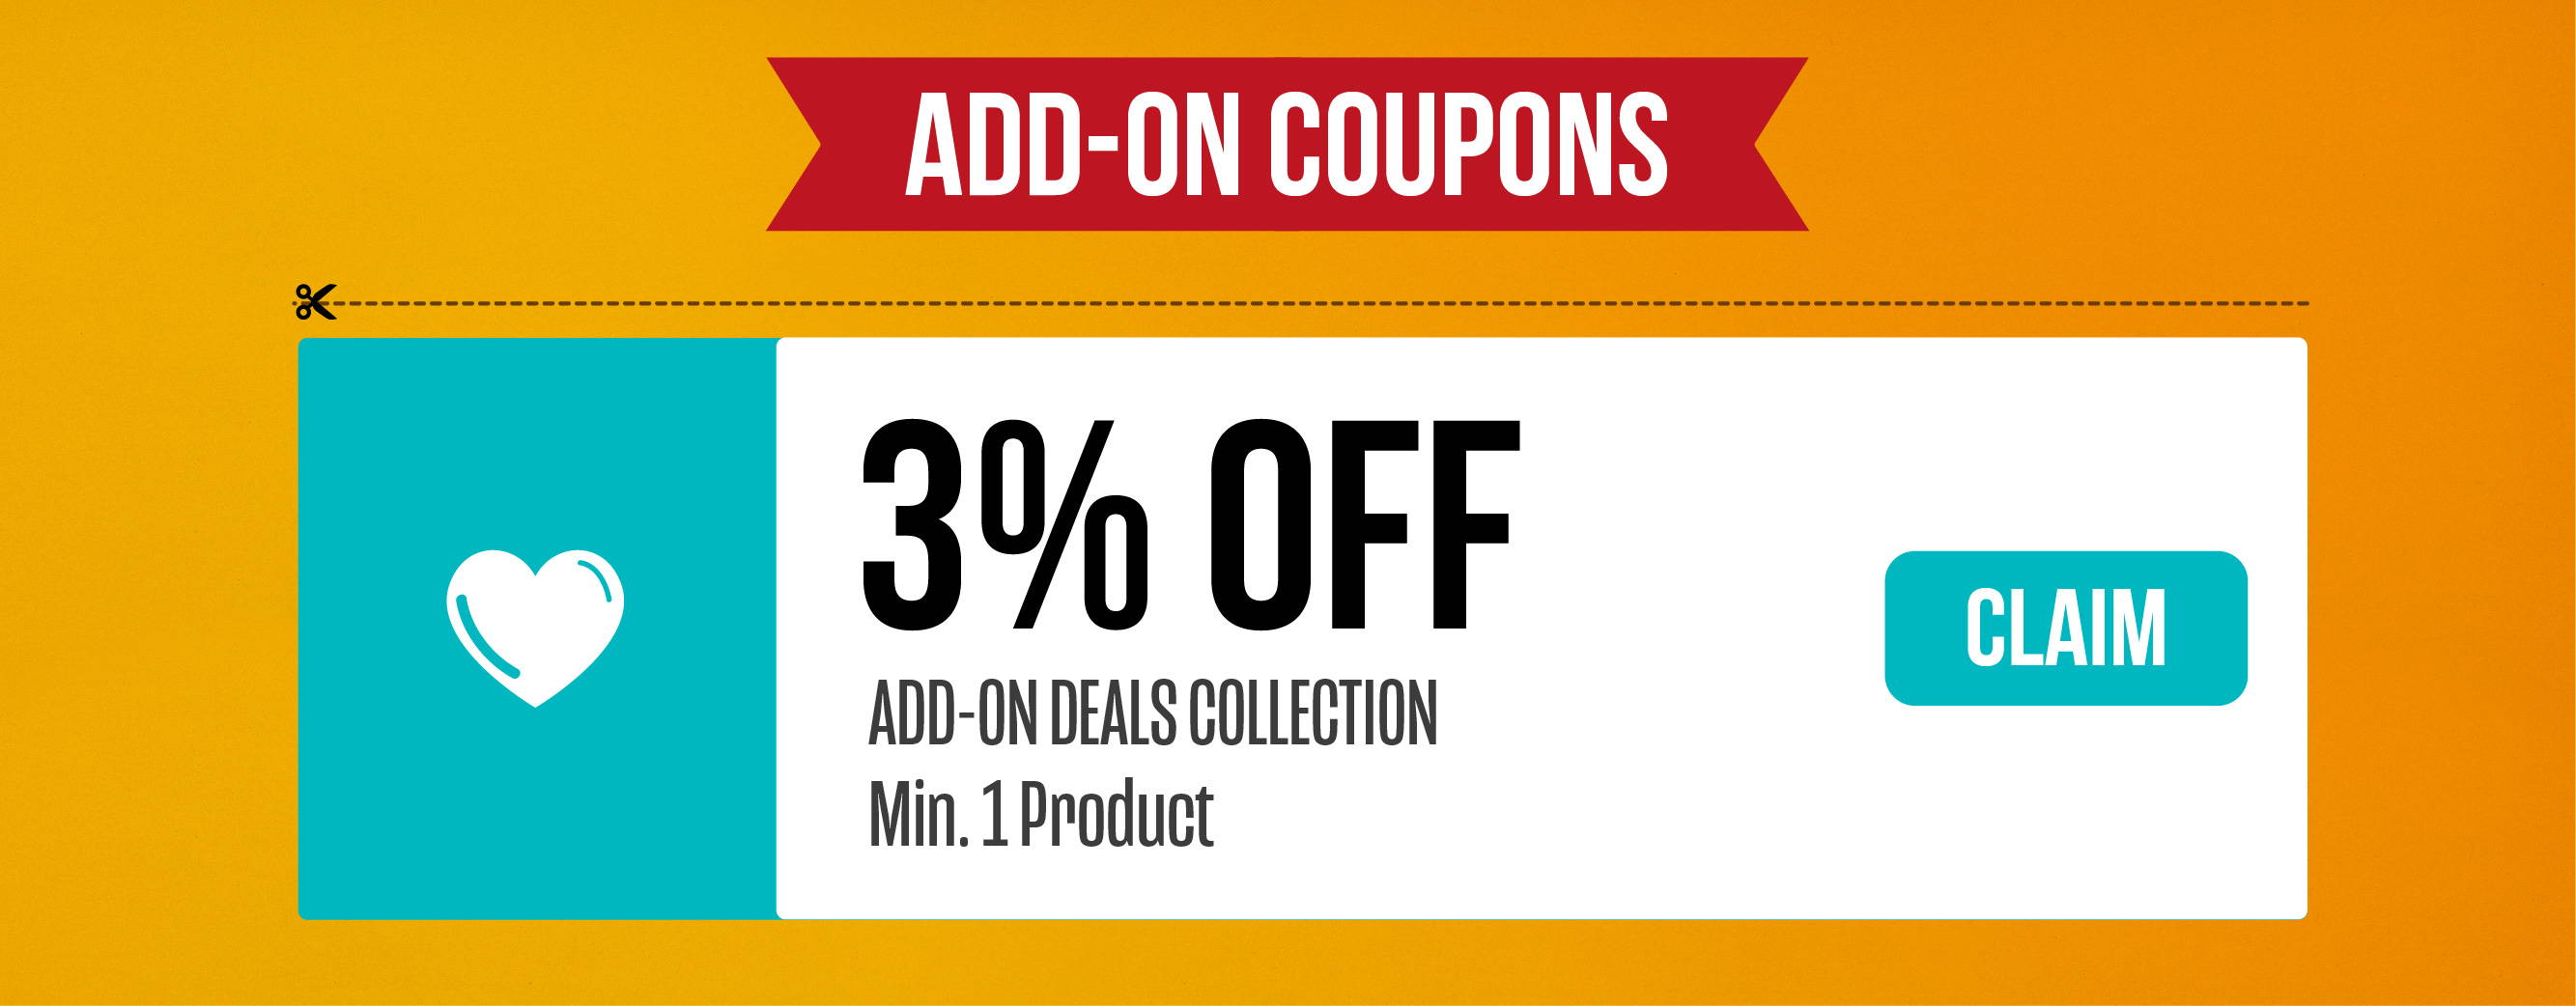 Add-on coupons with 3% OFF for minimum 1 product from Add-on Deals collection.